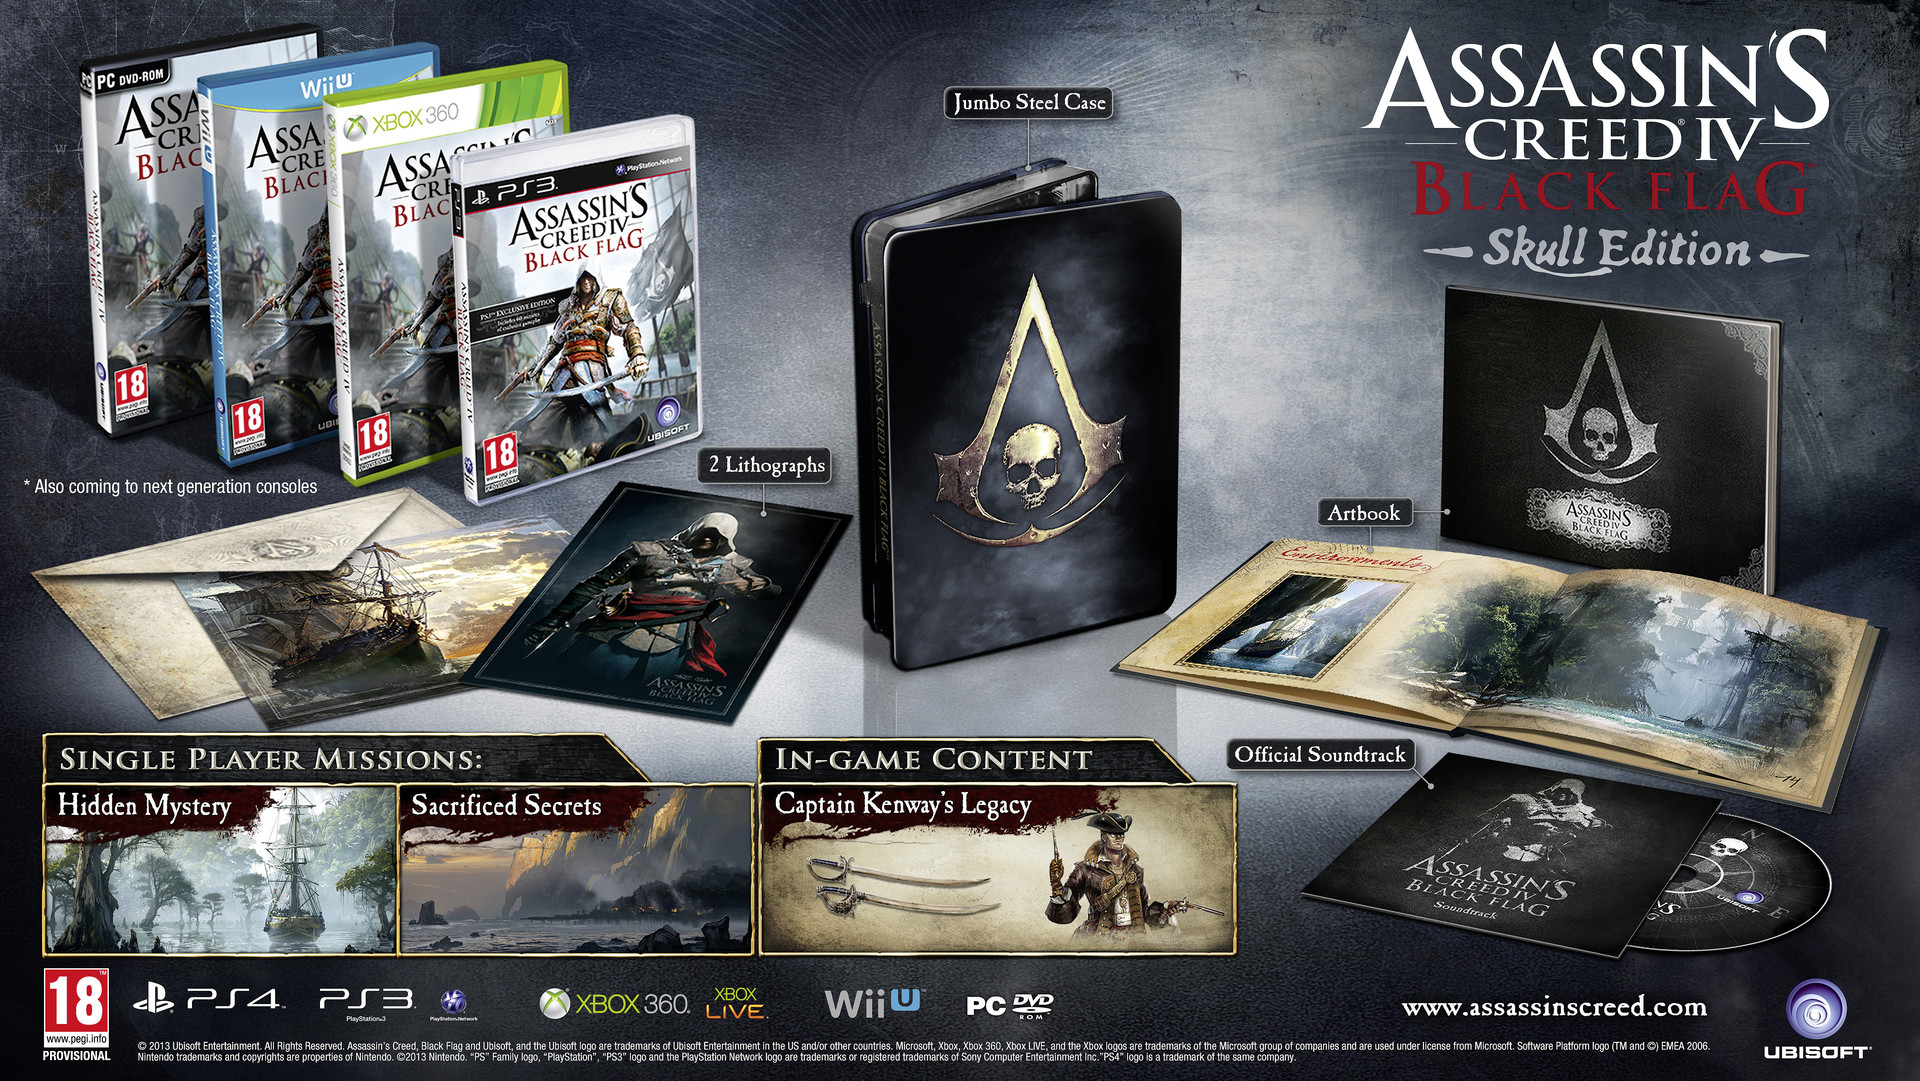 réserver assassin creed 4 skull édition